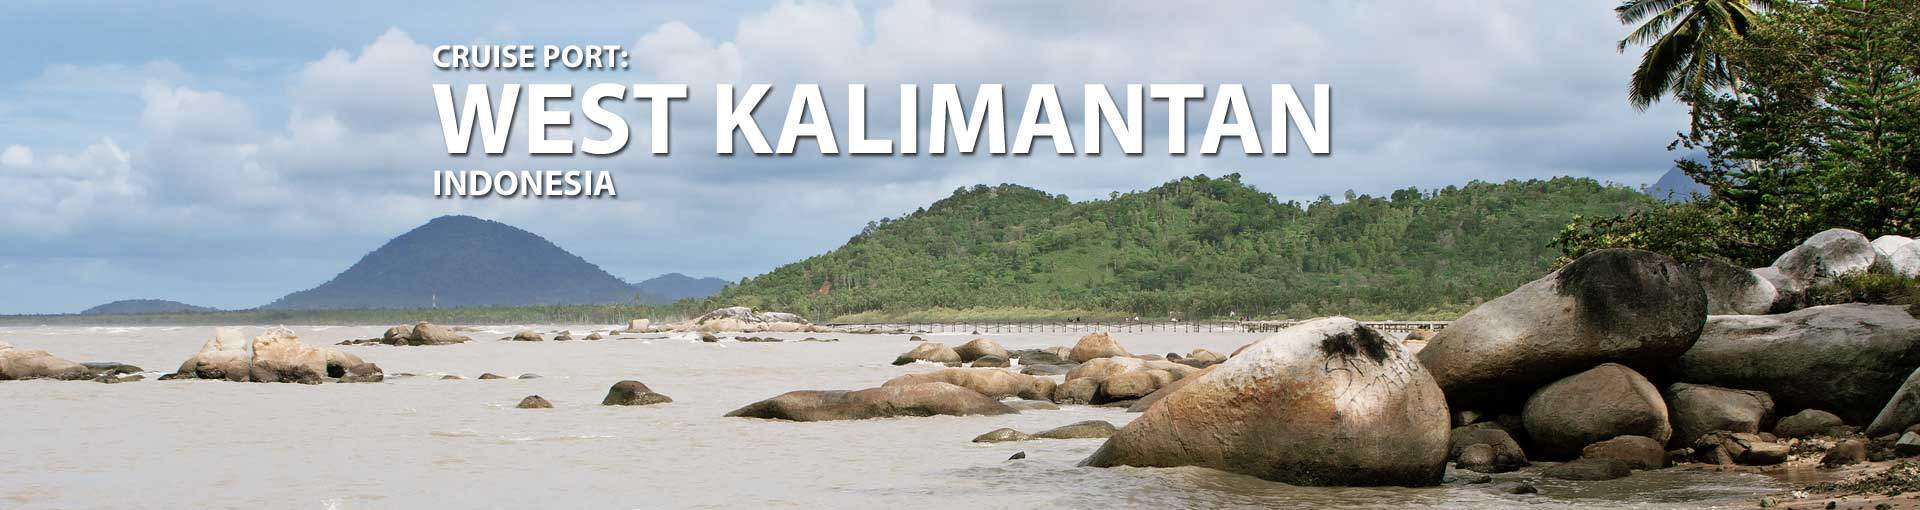 Cruises to West Kalimantan, Indonesia